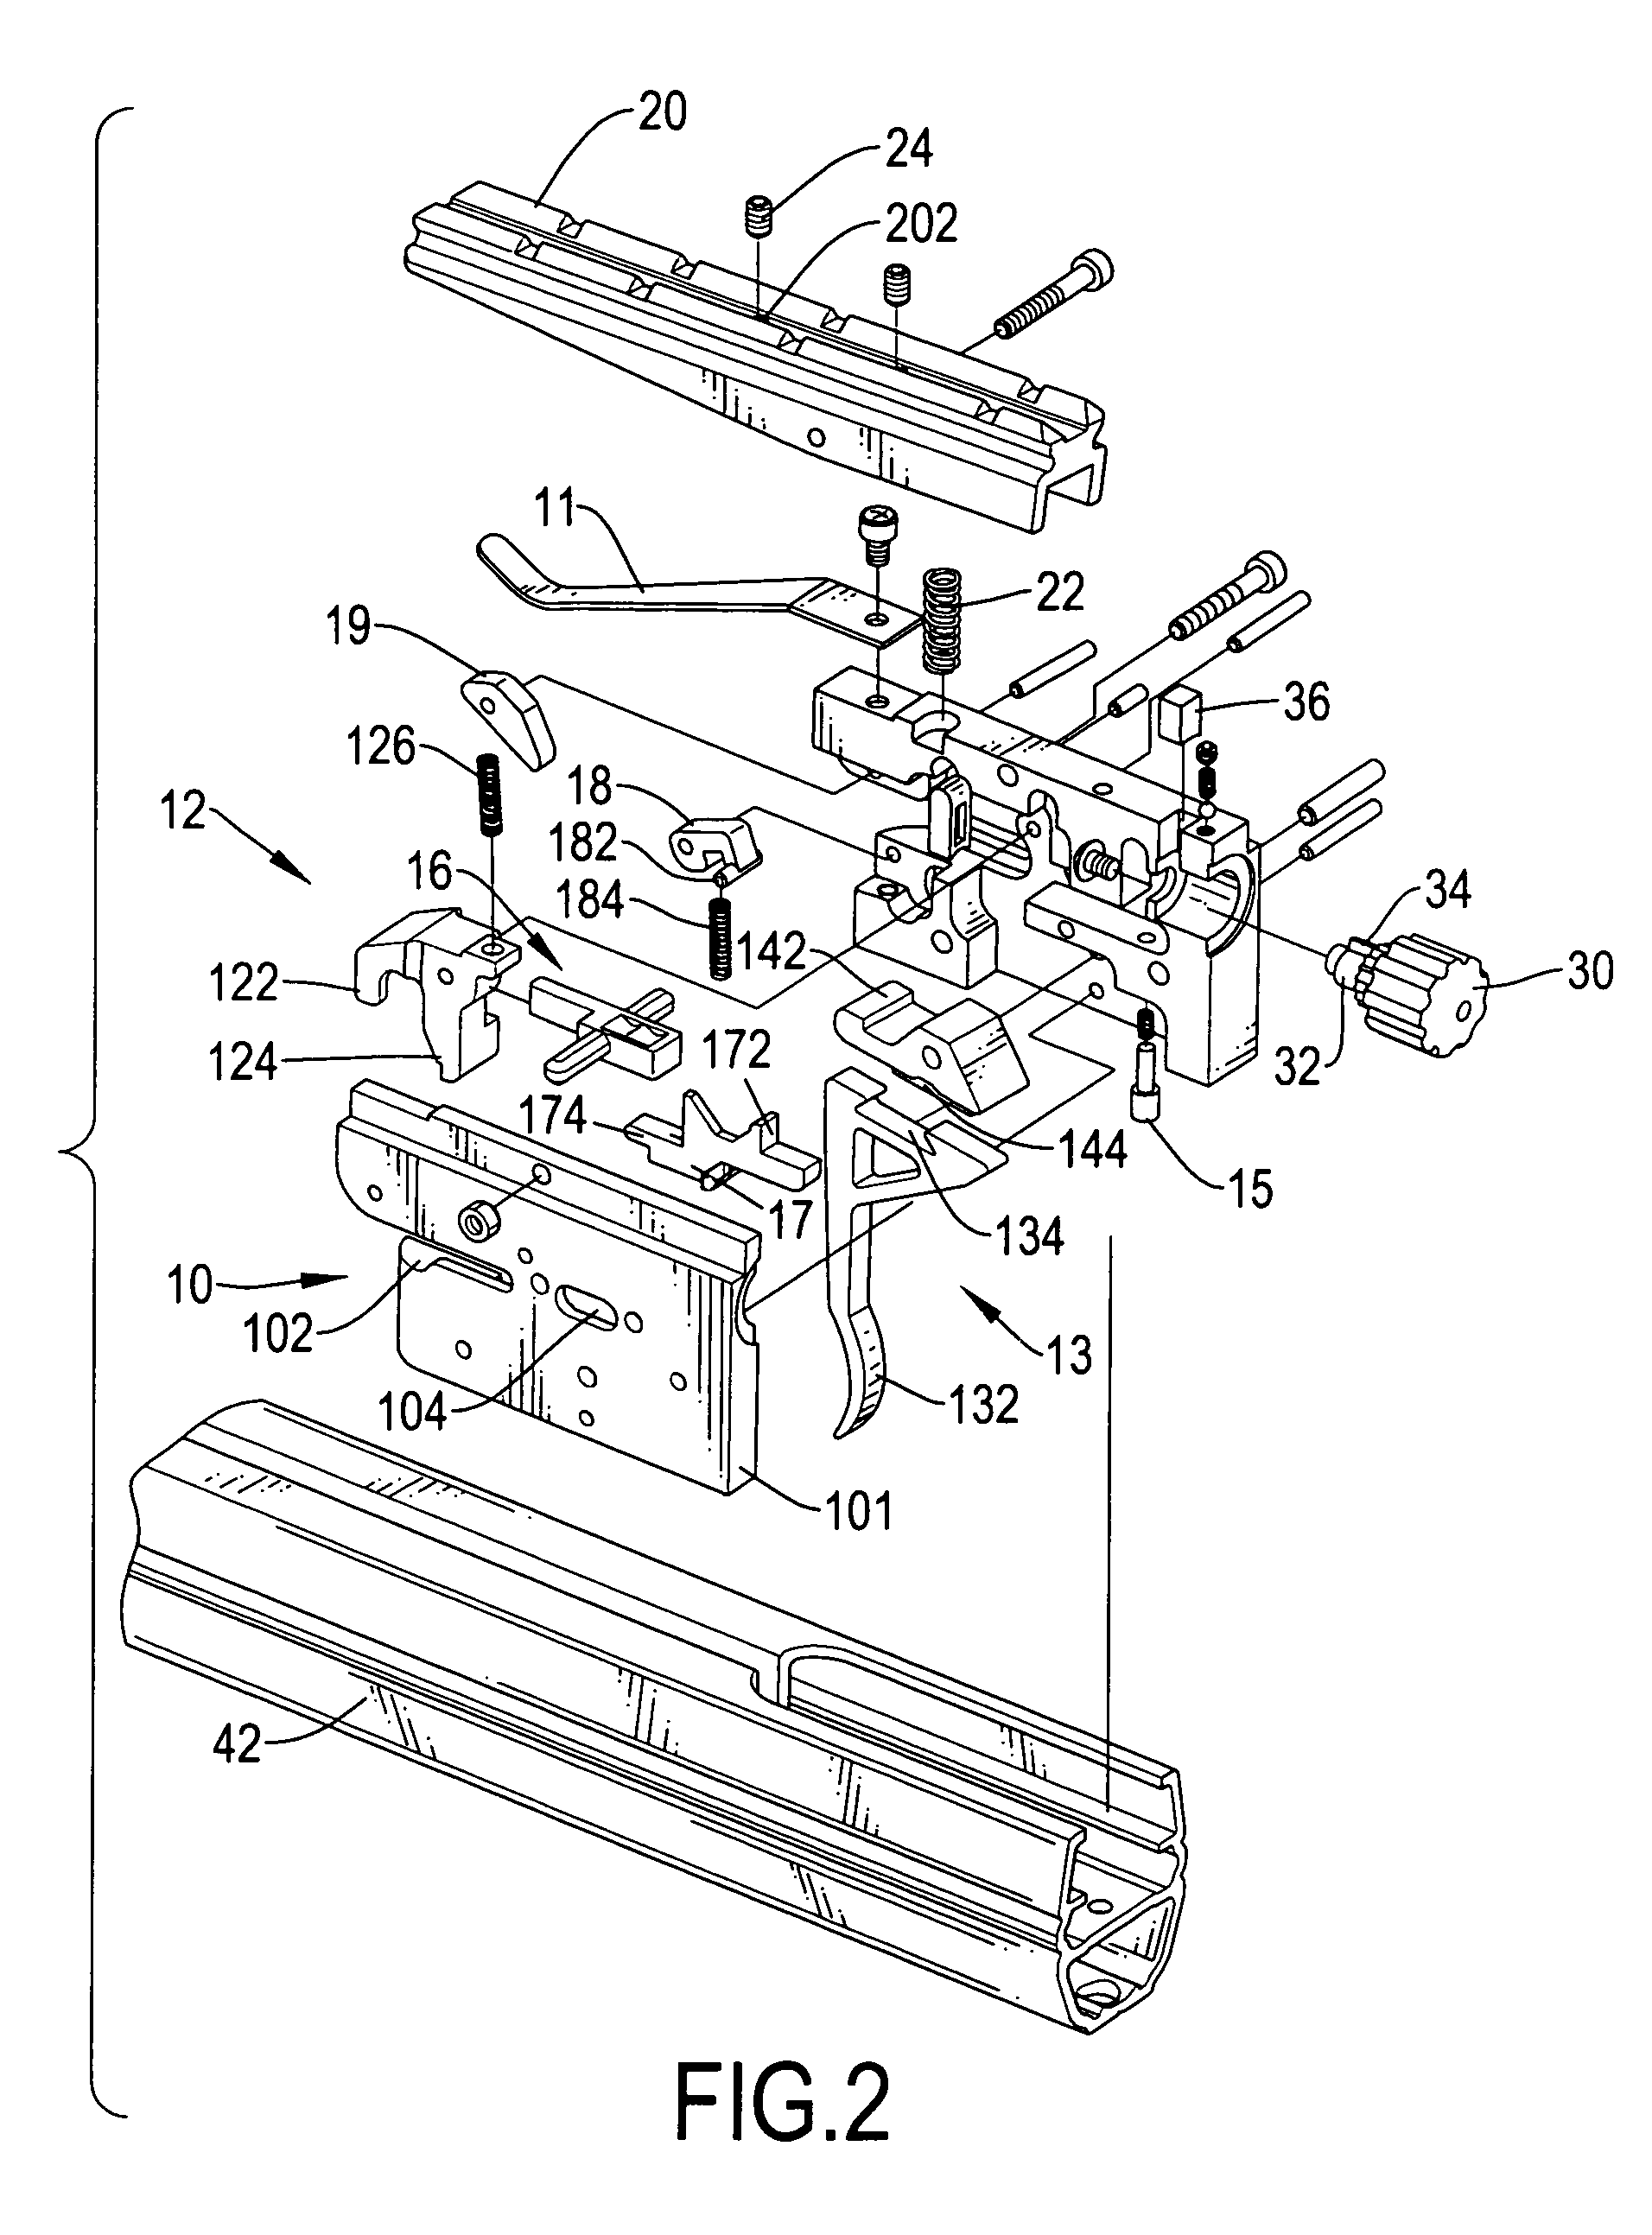 chinese repeating crossbow plans pdf